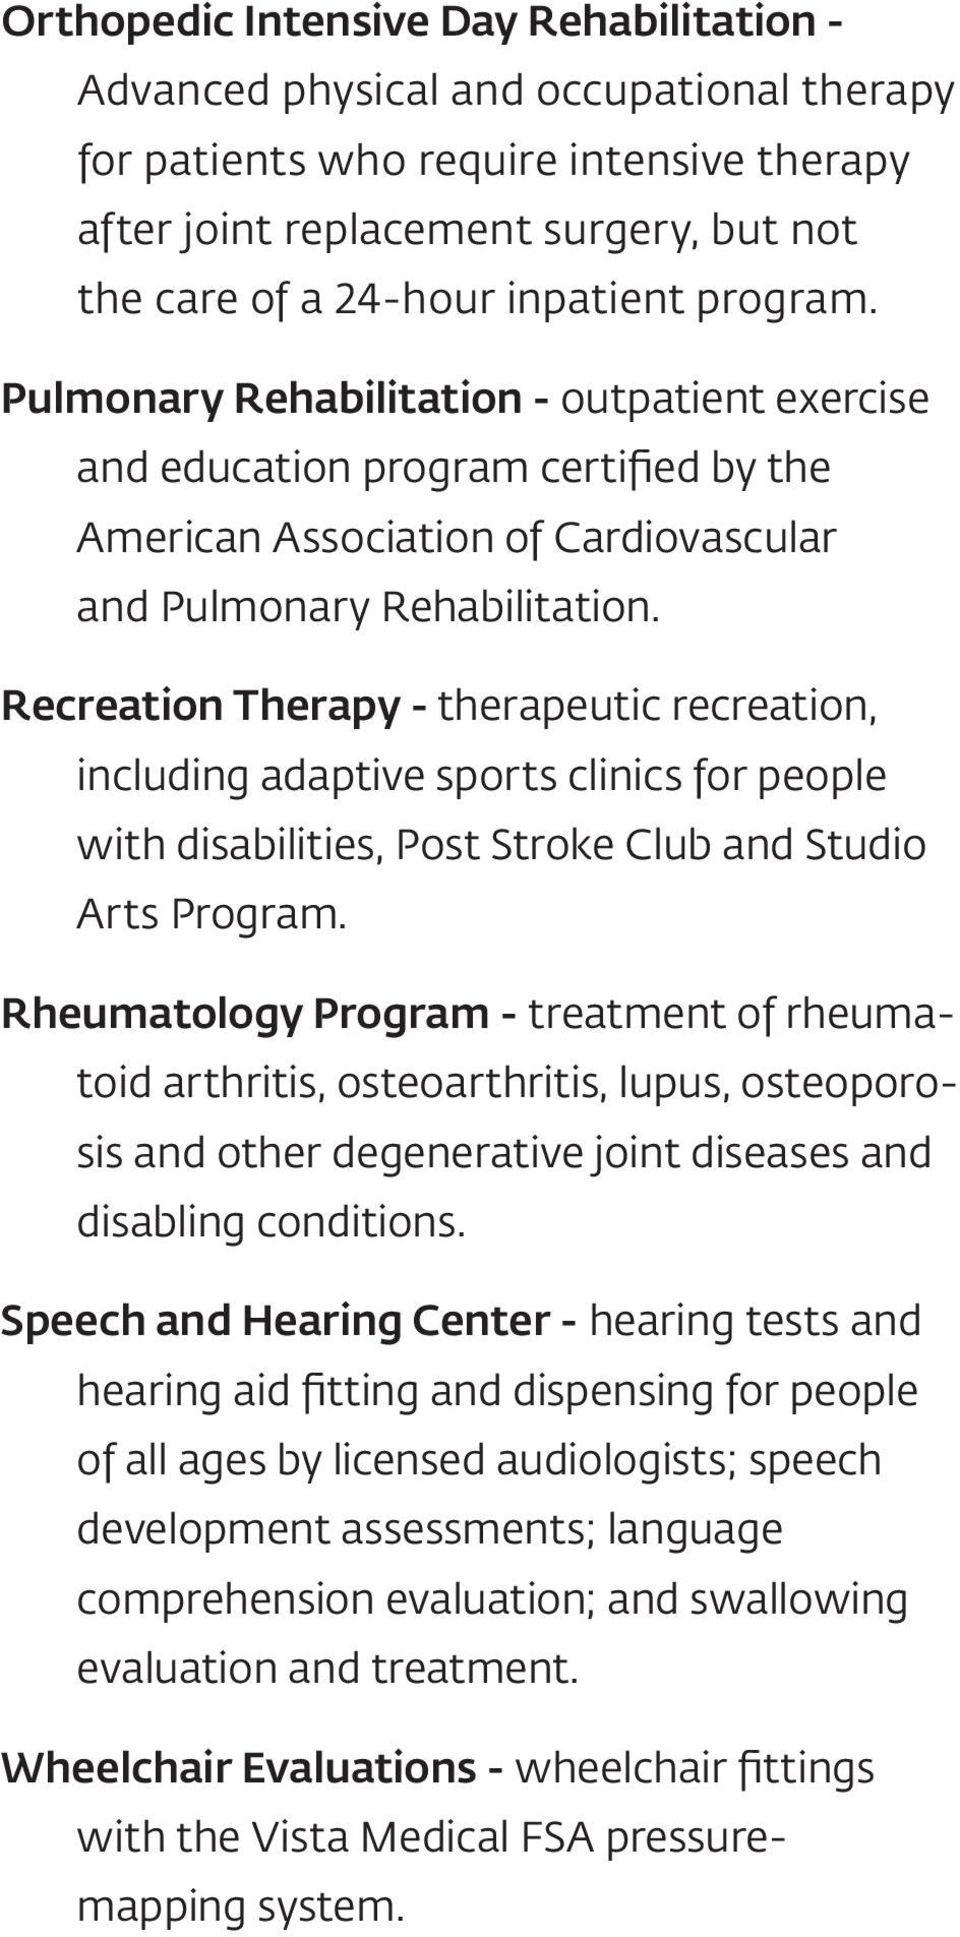 Recreation Therapy - therapeutic recreation, including adaptive sports clinics for people with disabilities, Post Stroke Club and Studio Arts Program.